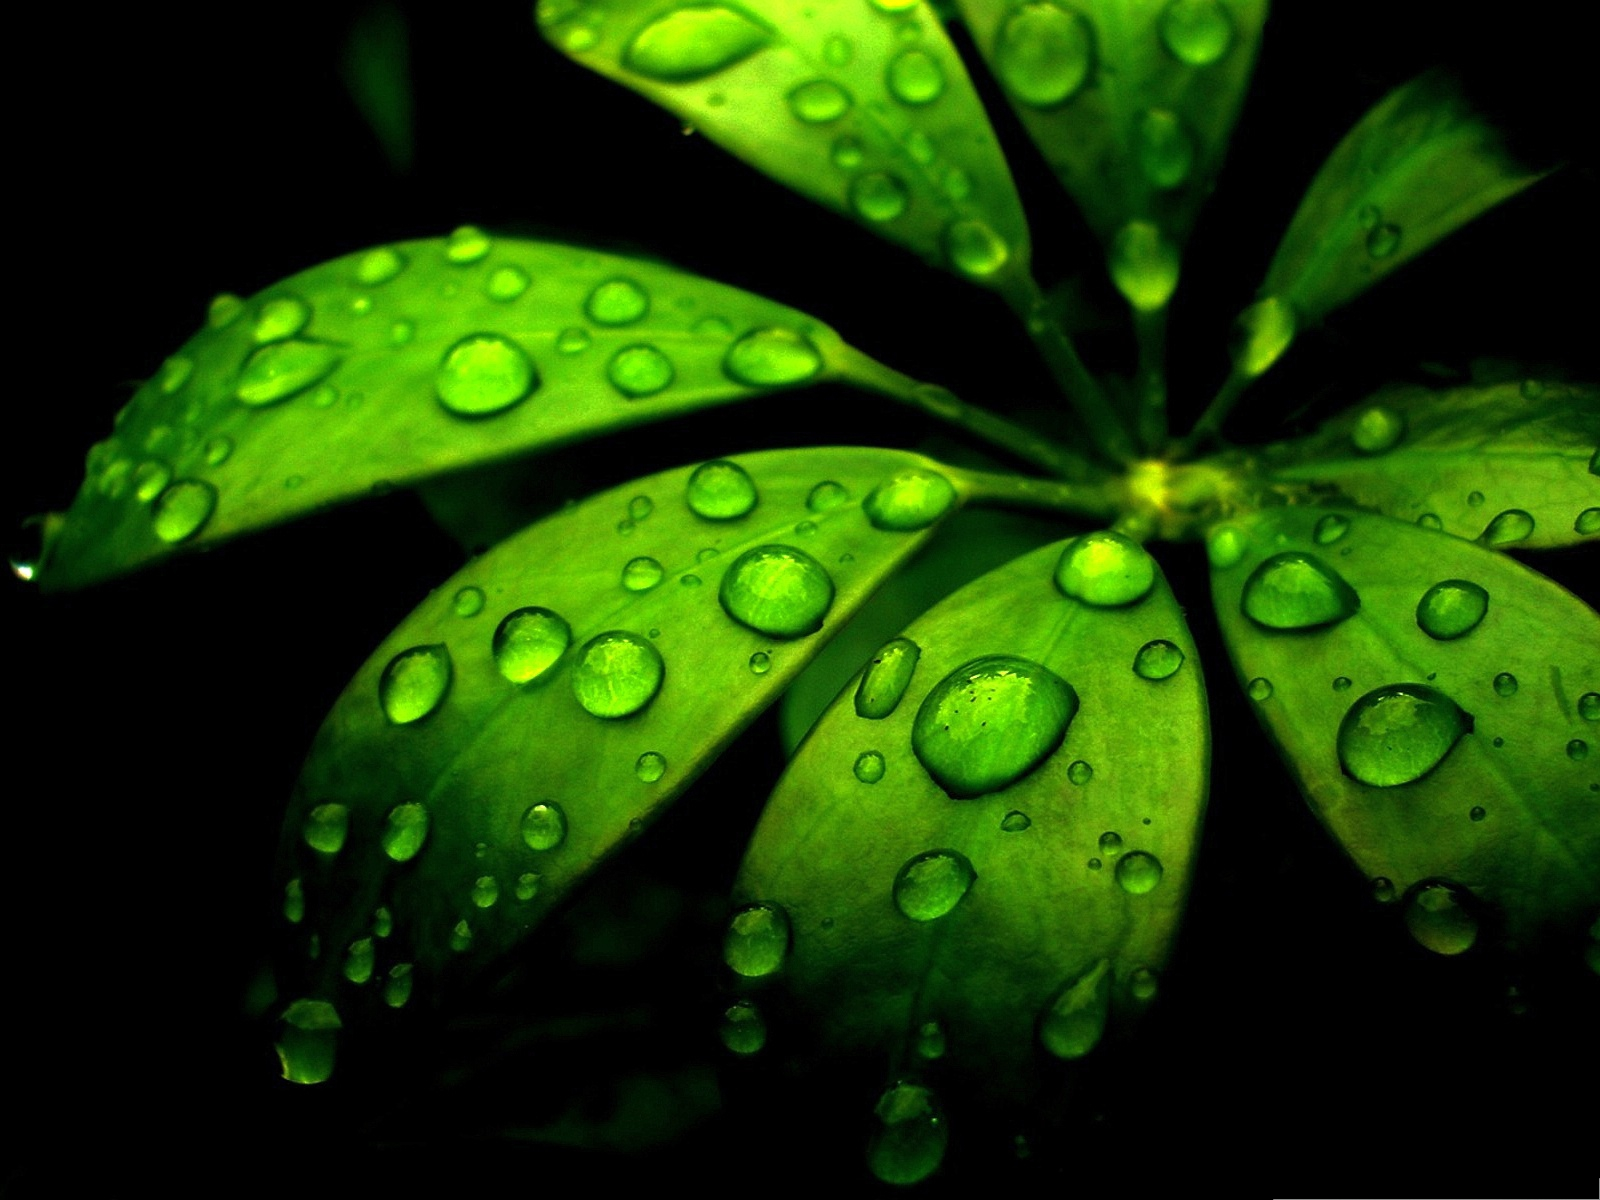 click to free download the wallpaper--Green Flower Photos, Morning Dew on Green Plants, Crystal Clear Waterdrops 1600X1200 free wallpaper download